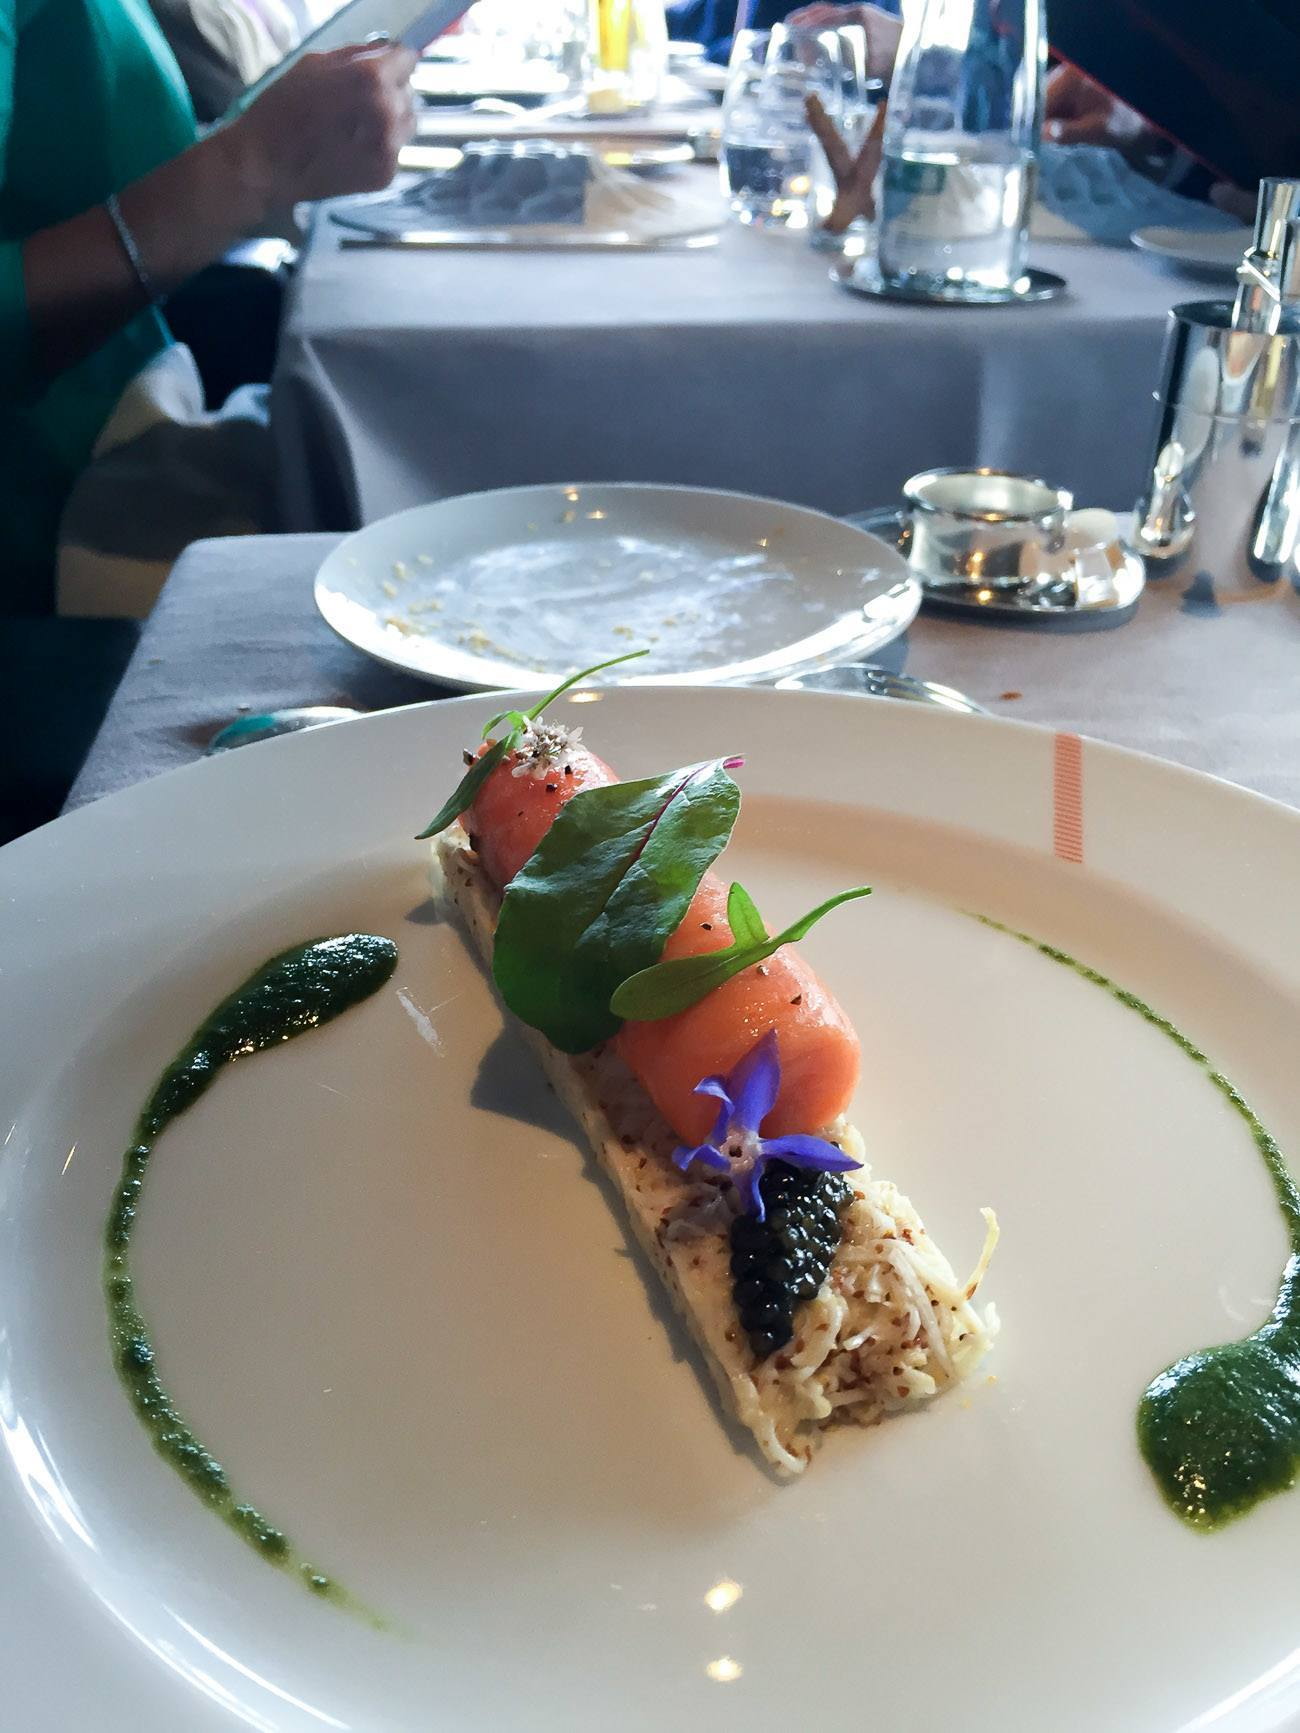 Salmon with caviar at Le Jules Verne restaurant in the Eiffel Tower